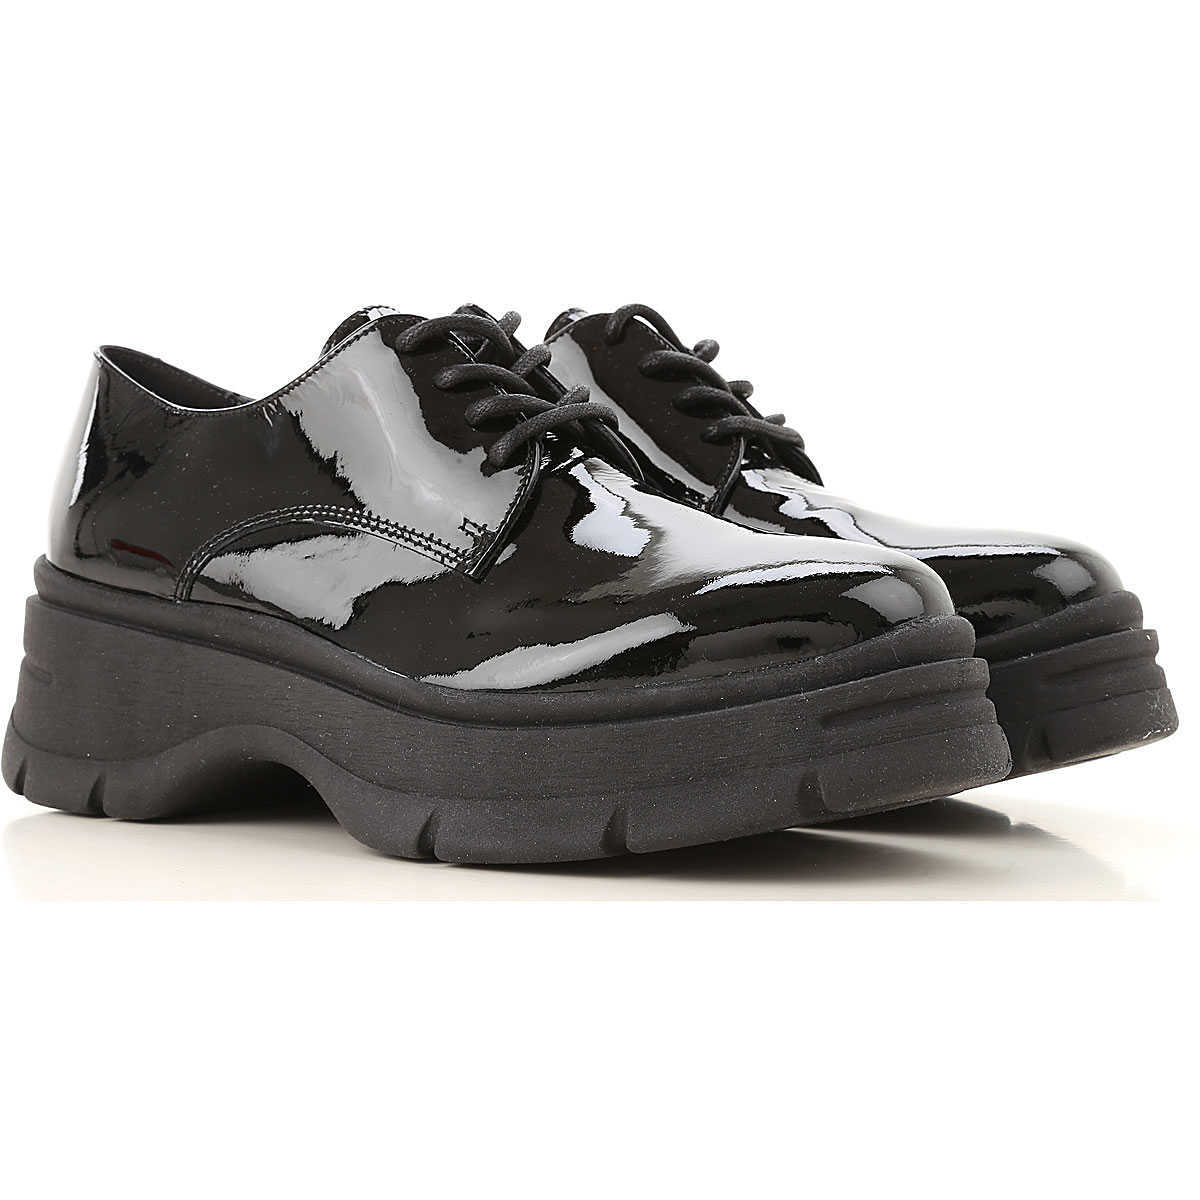 Janet & Janet Lace Up Shoes for Men Oxfords Derbies and Brogues DK - GOOFASH - Womens LEATHER SHOES